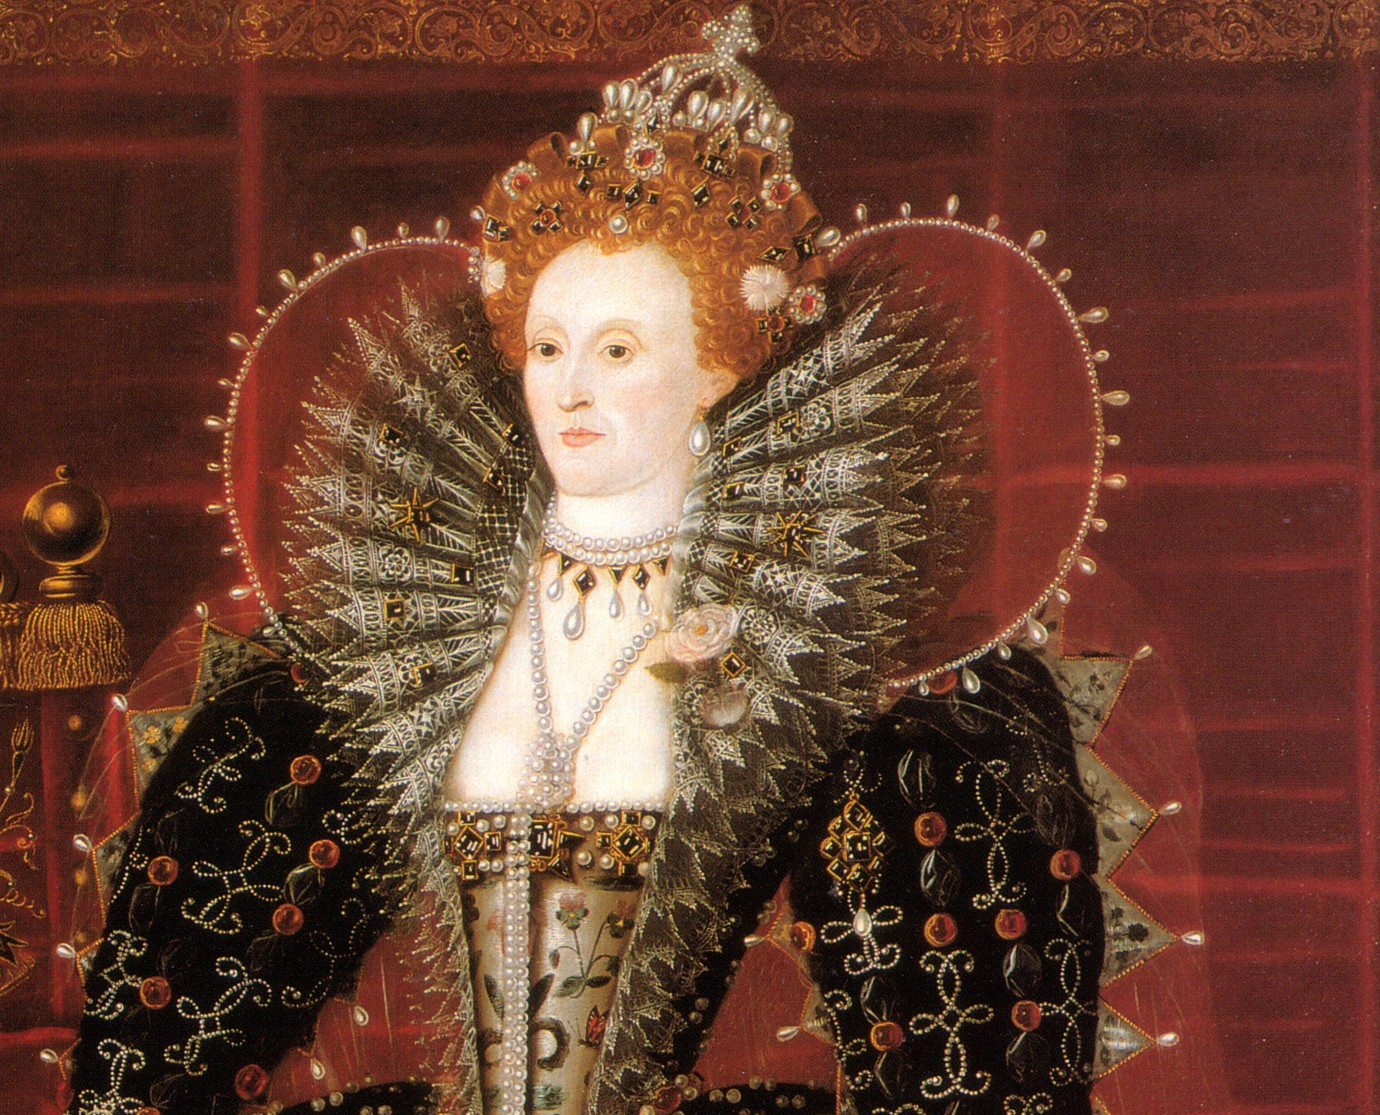 Retrato da Rainha Elizabeth I da Inglaterra, no final do século XVI.